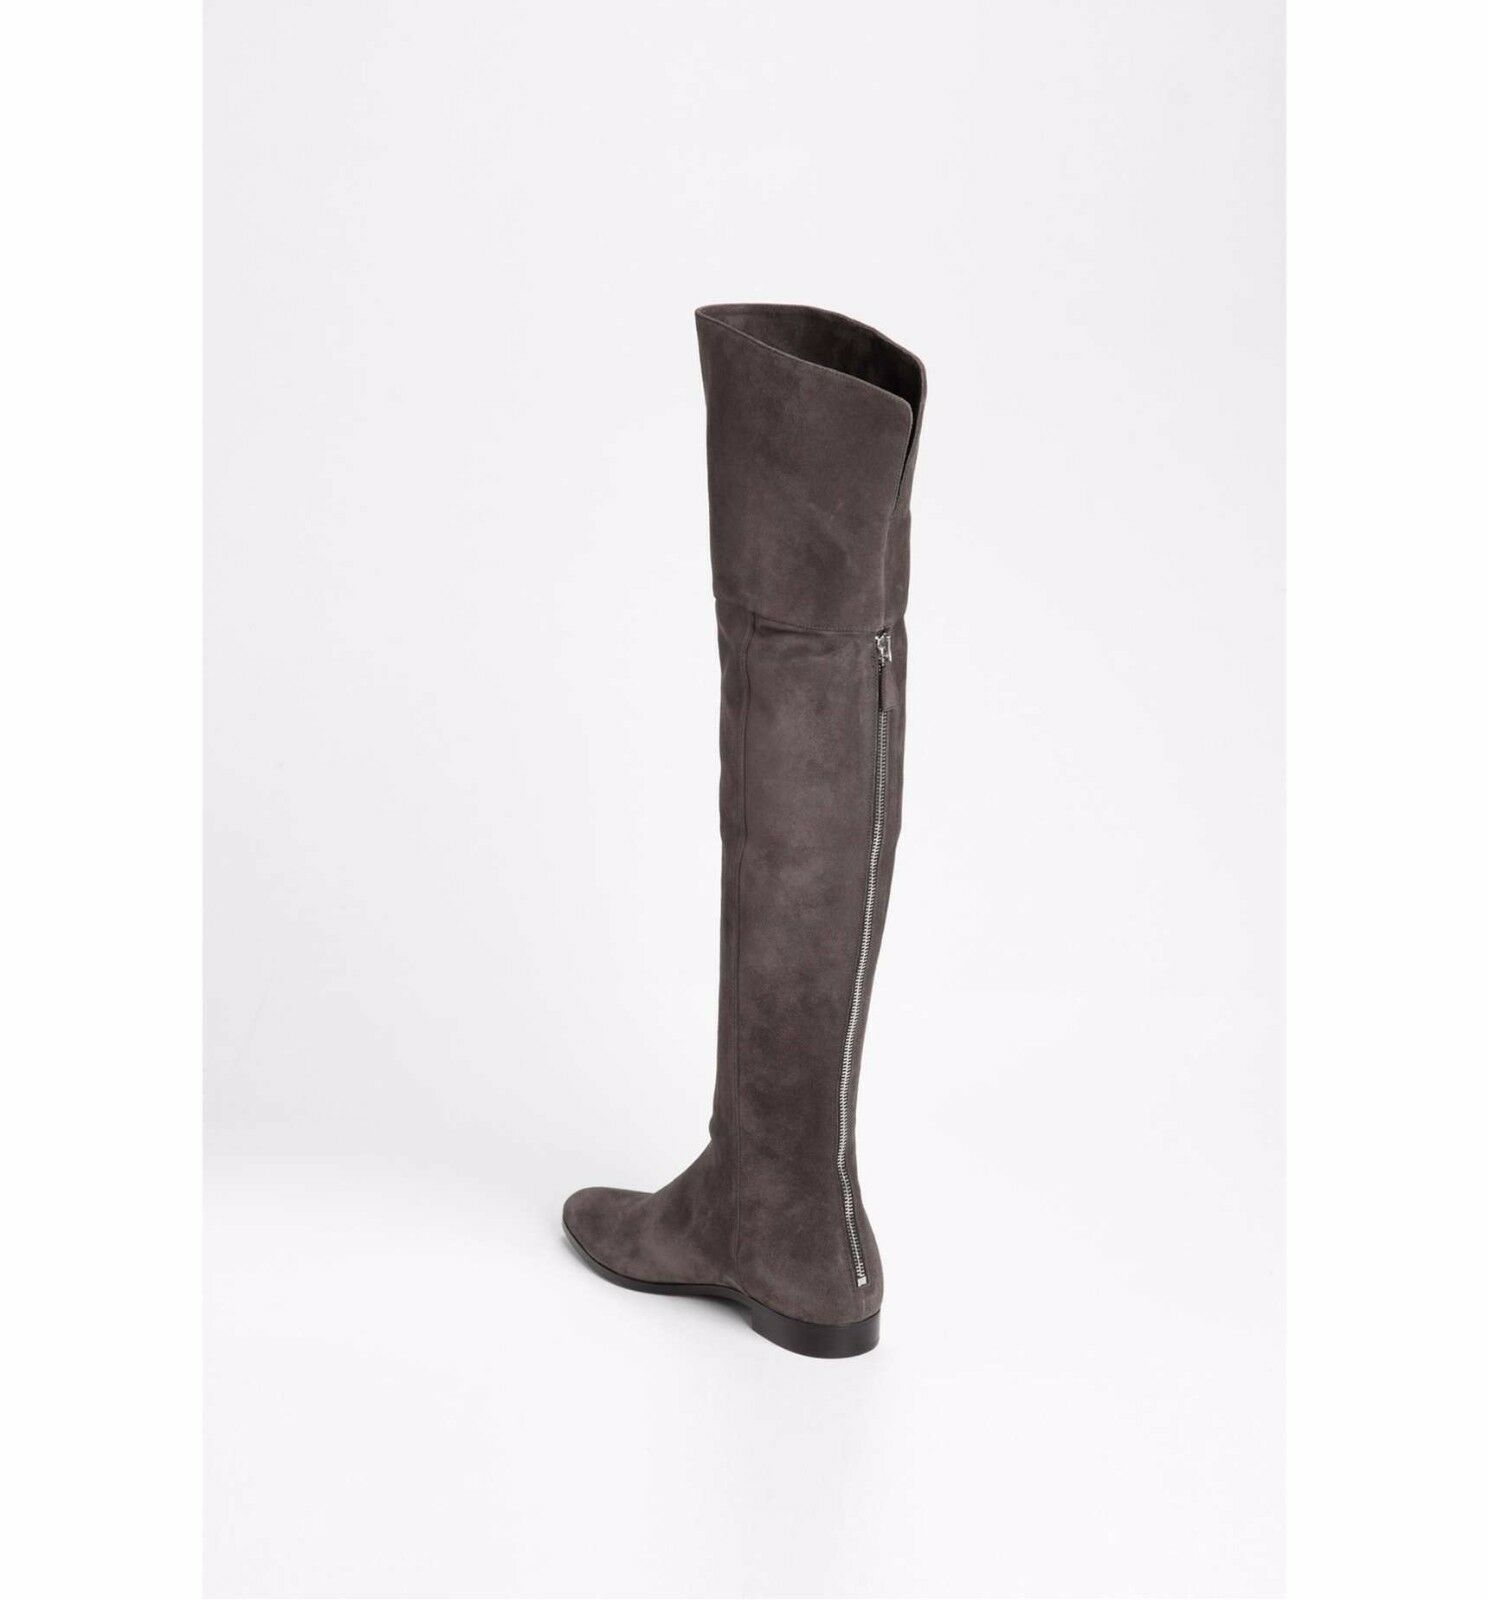 1750.00 Prada Over the Knee Boot sz  EU 39.5    US 9.5 in brown suede 2bbfa7